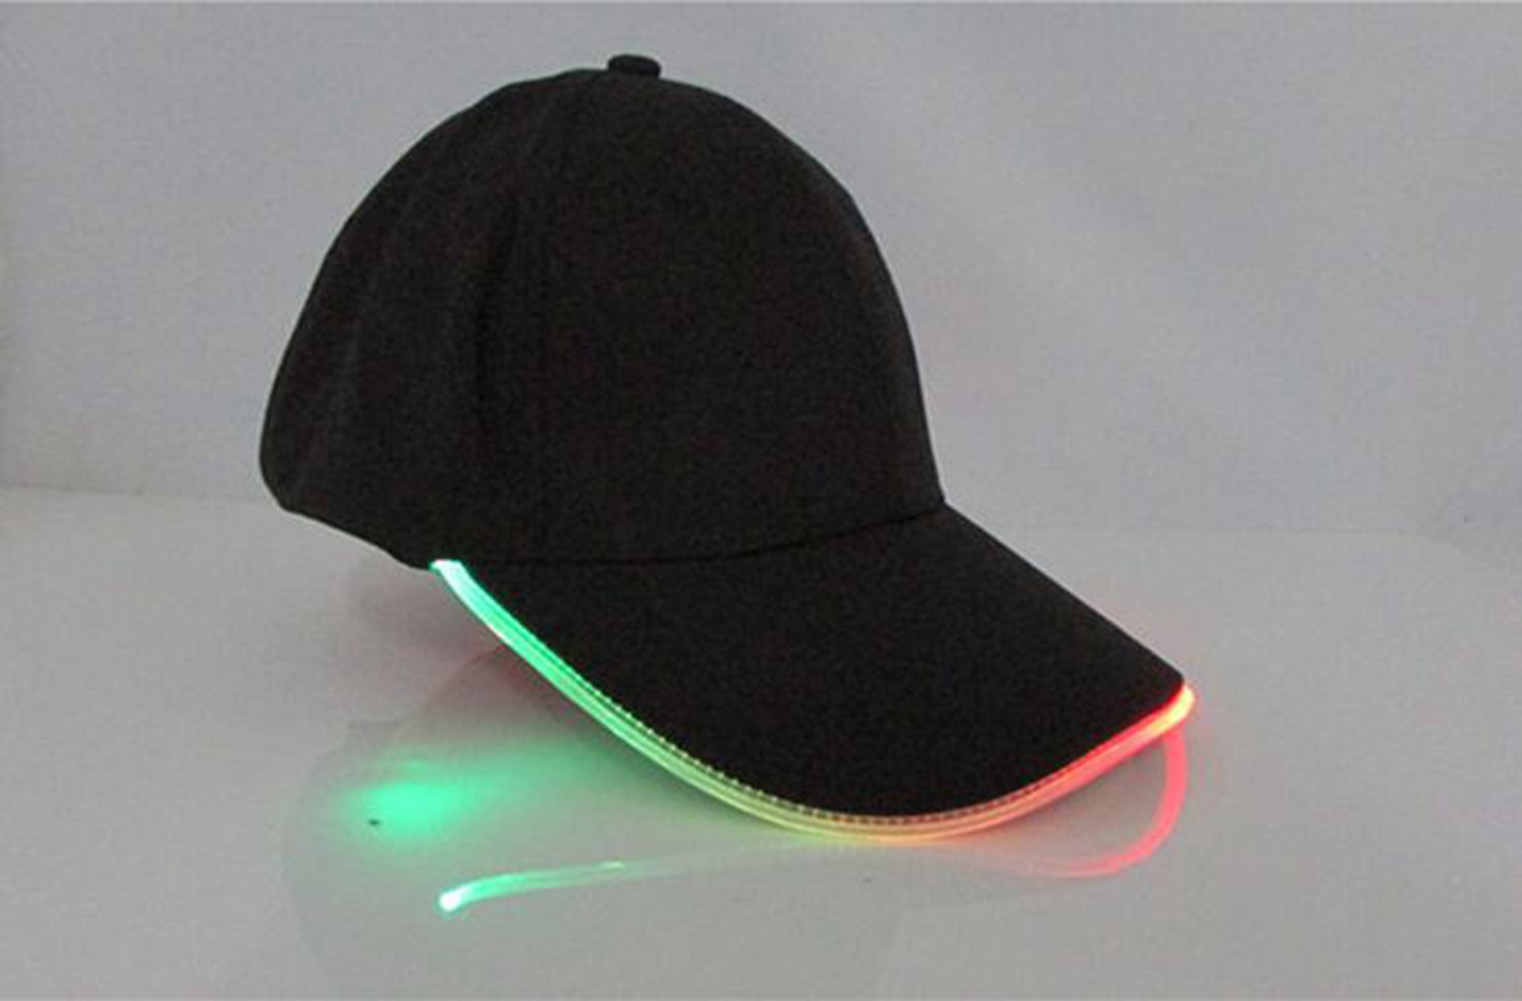 LED Light Glow Club Black Fabric Travel Hat